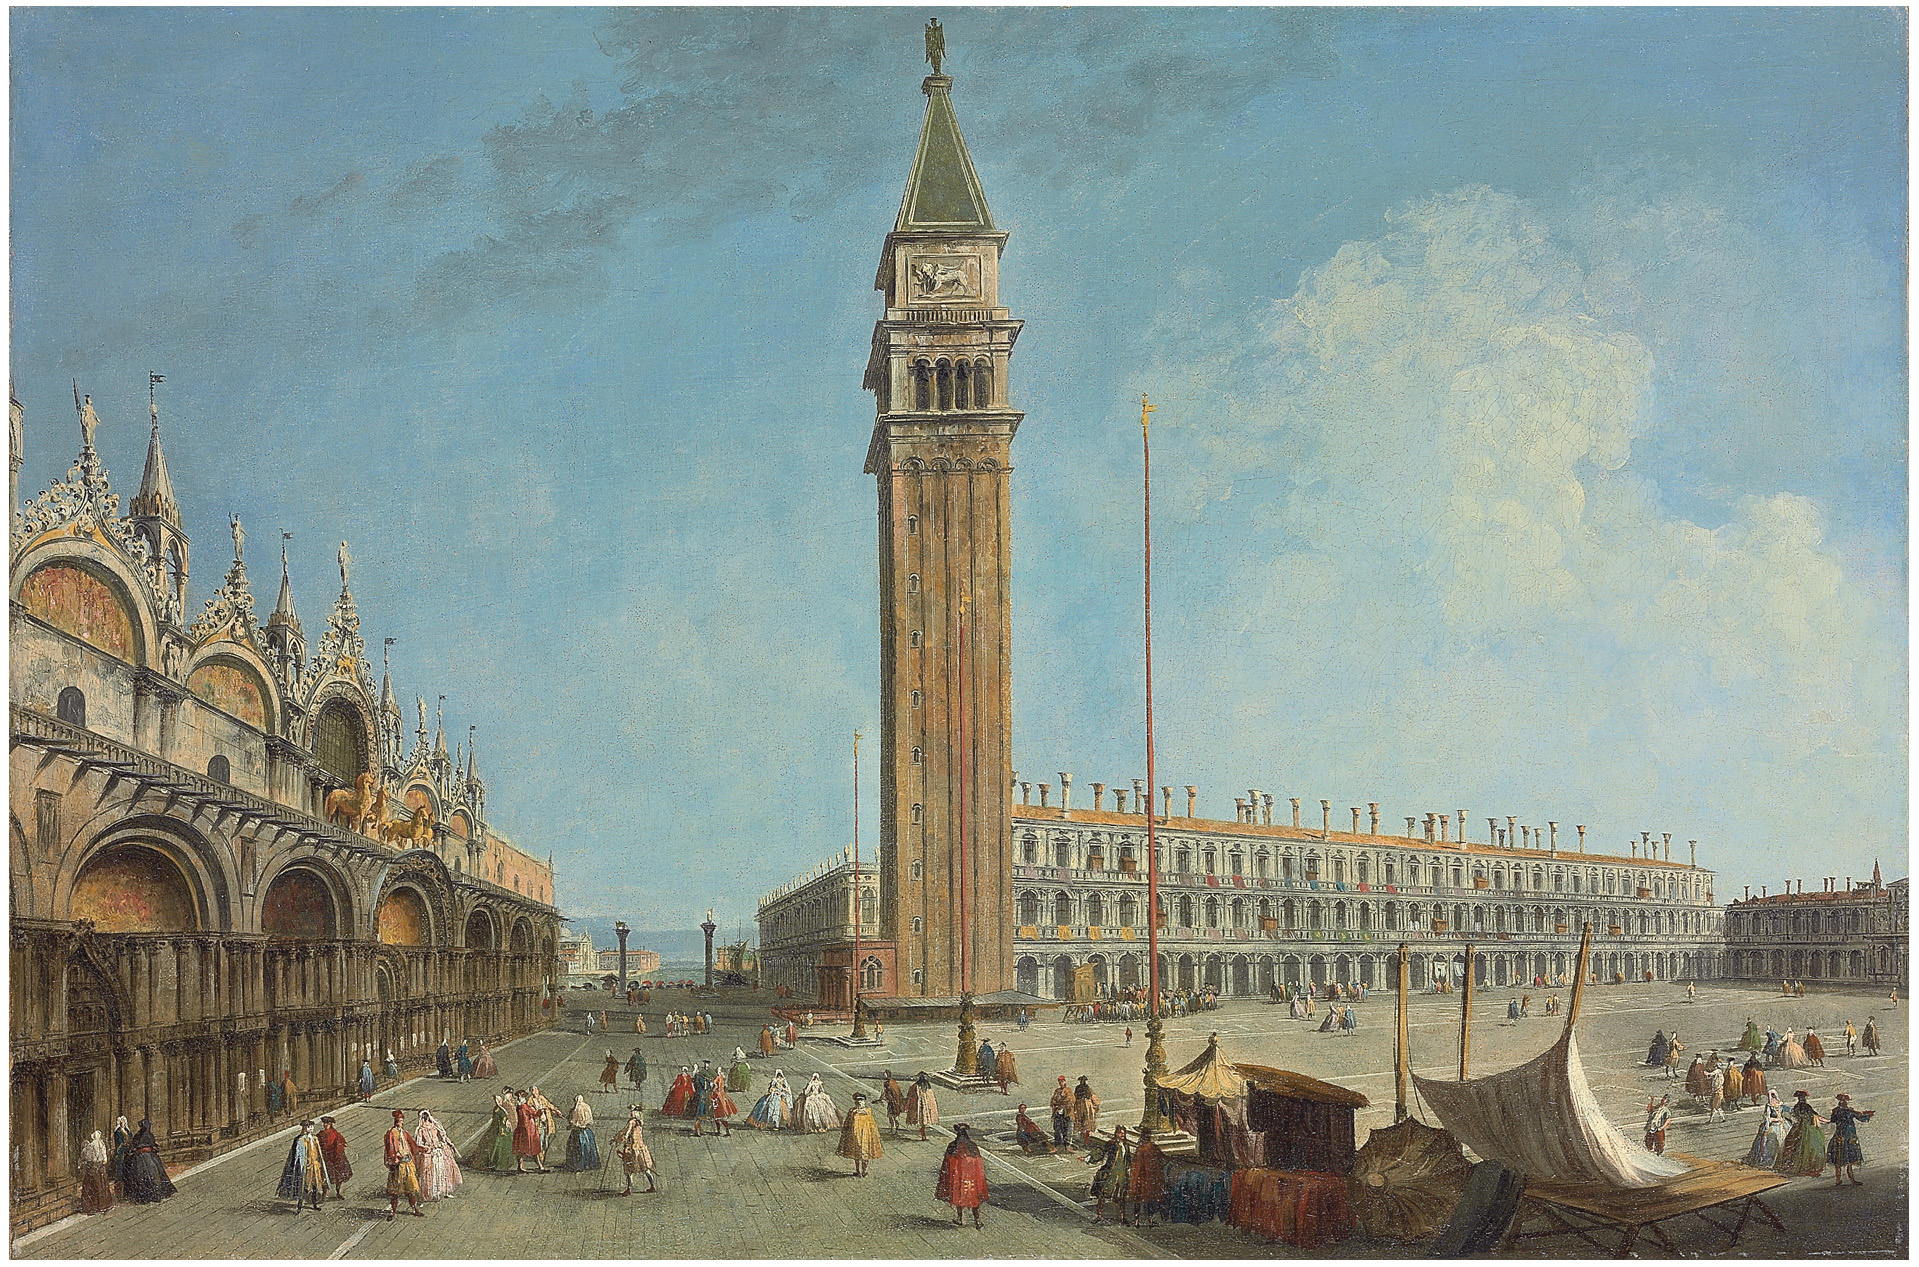 The Piazza San Marco, Venice, from the Torre dell' Orologio, looking south